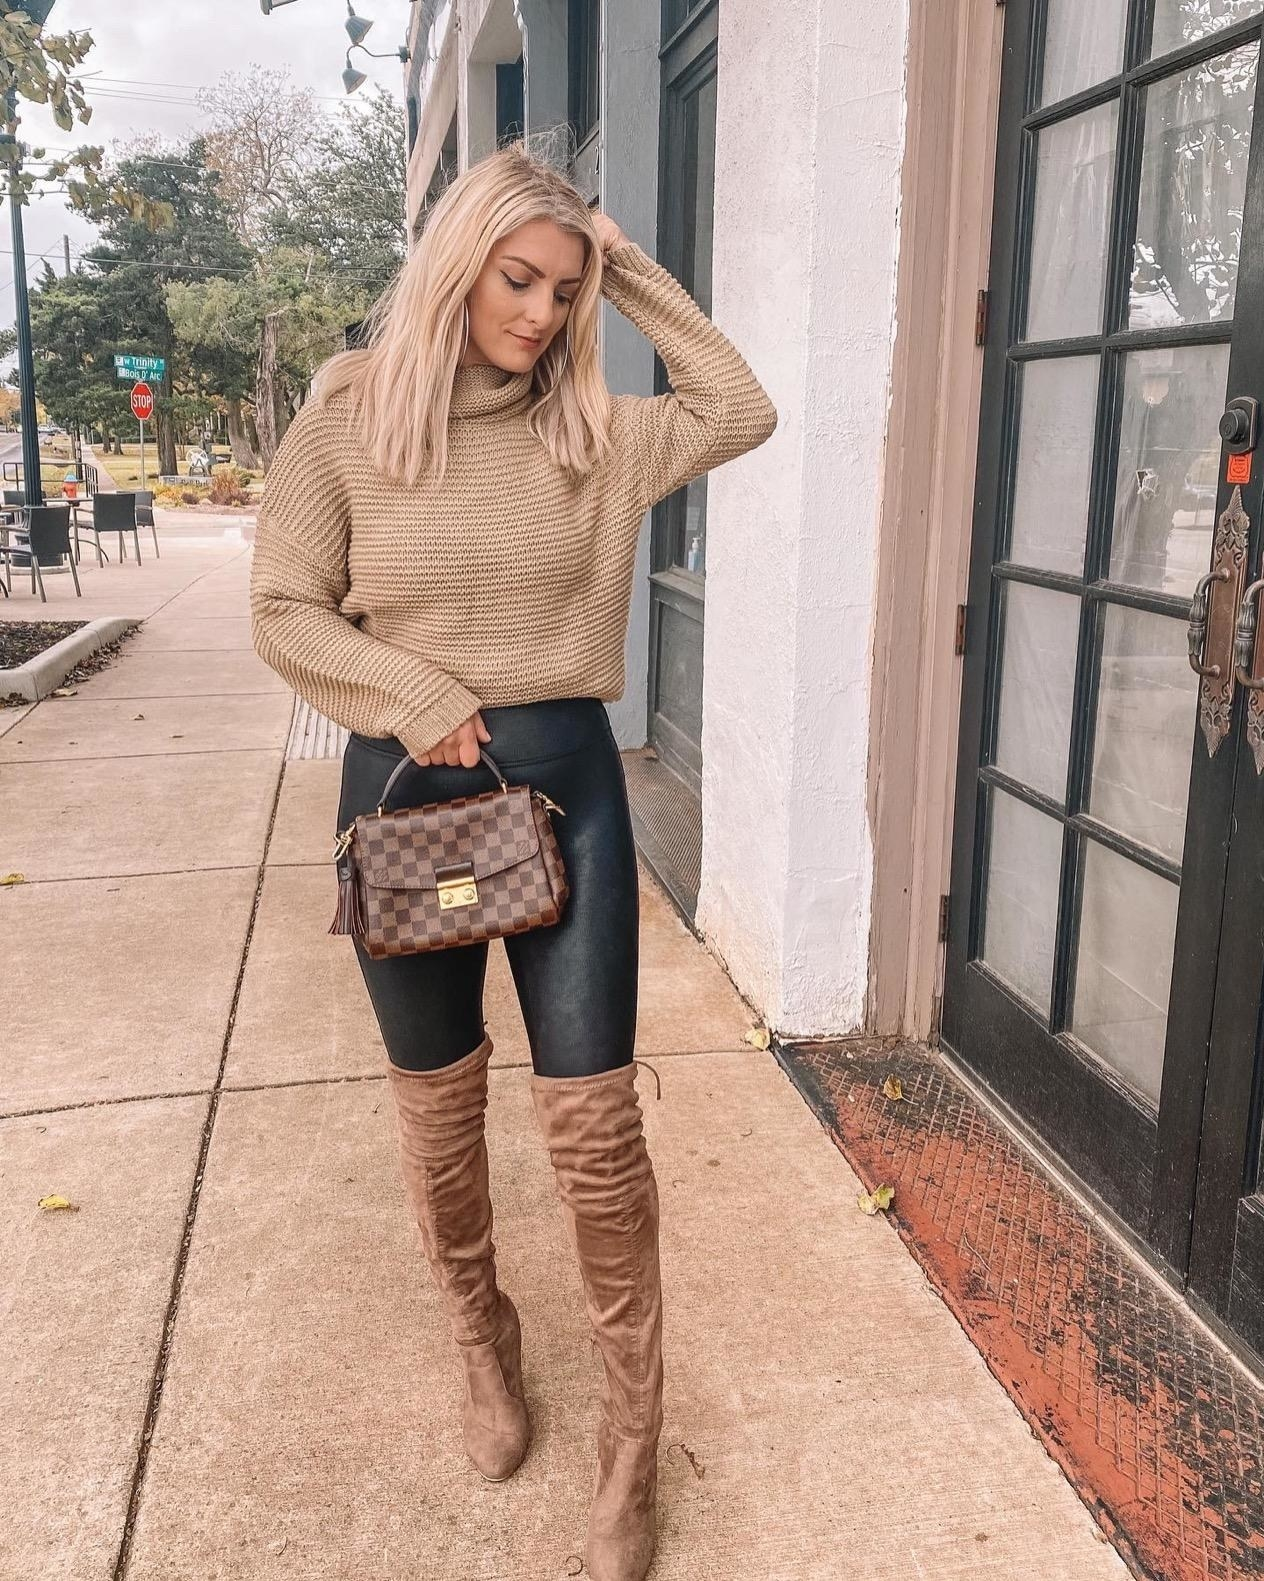 Reviewer photo of a person wearing a light brown sweater, dark jeans, and brown over the knee boots